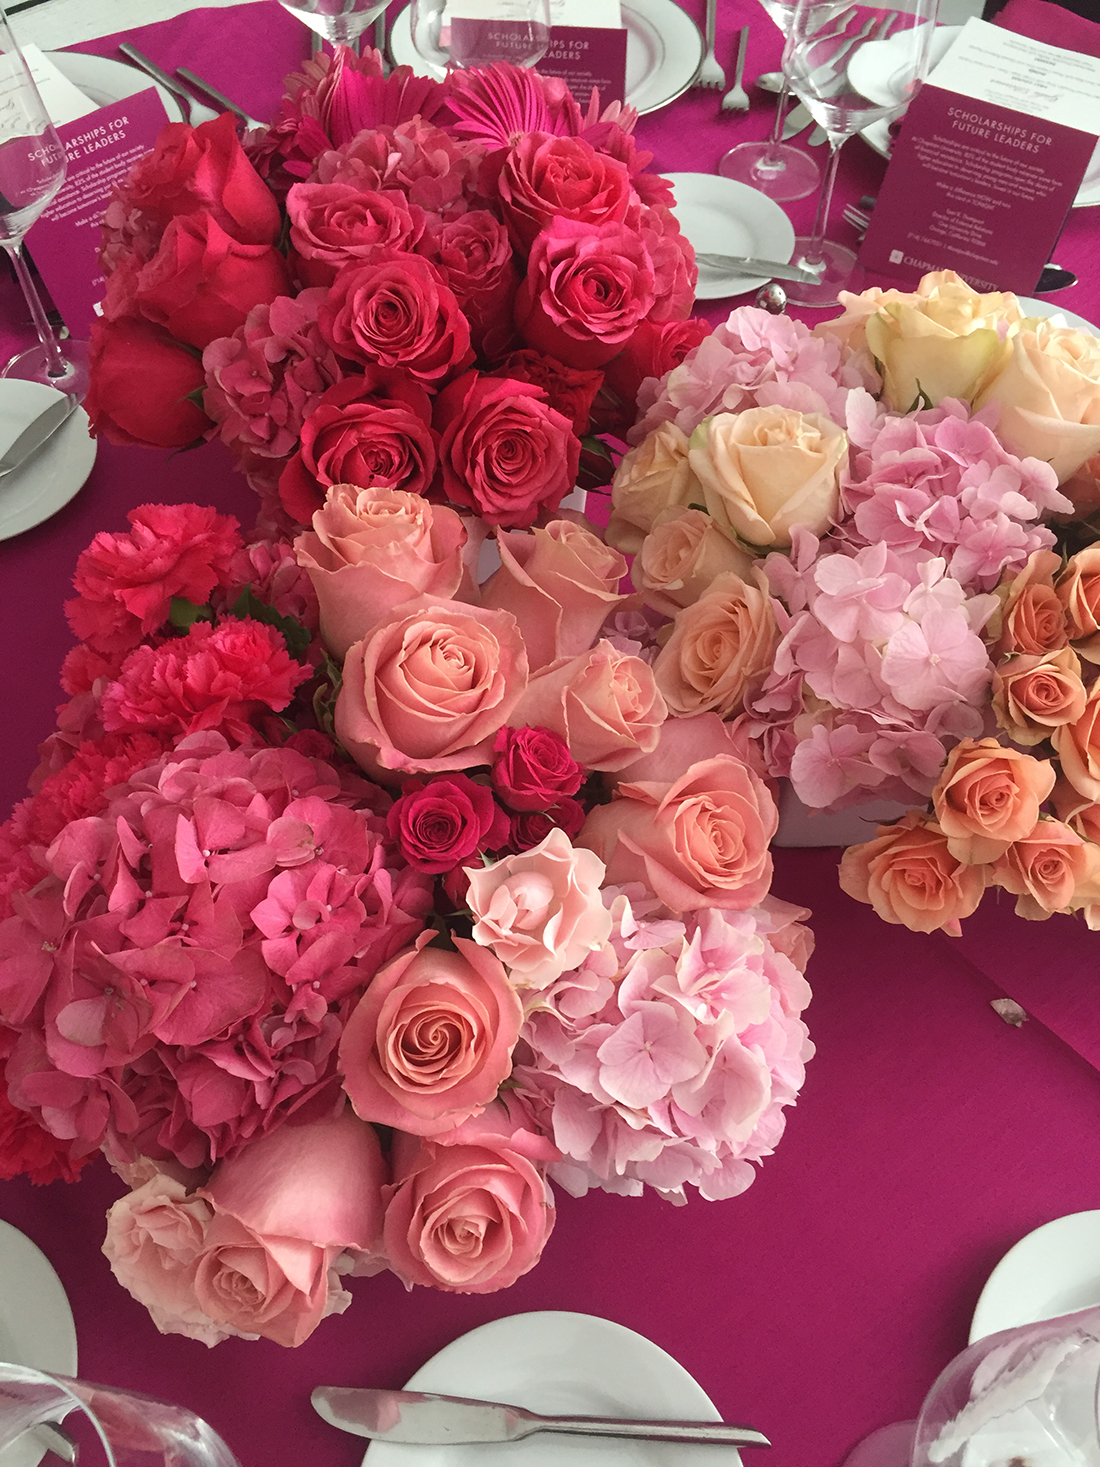 An image of orange, pink roses and hydrangeas floral arrangements